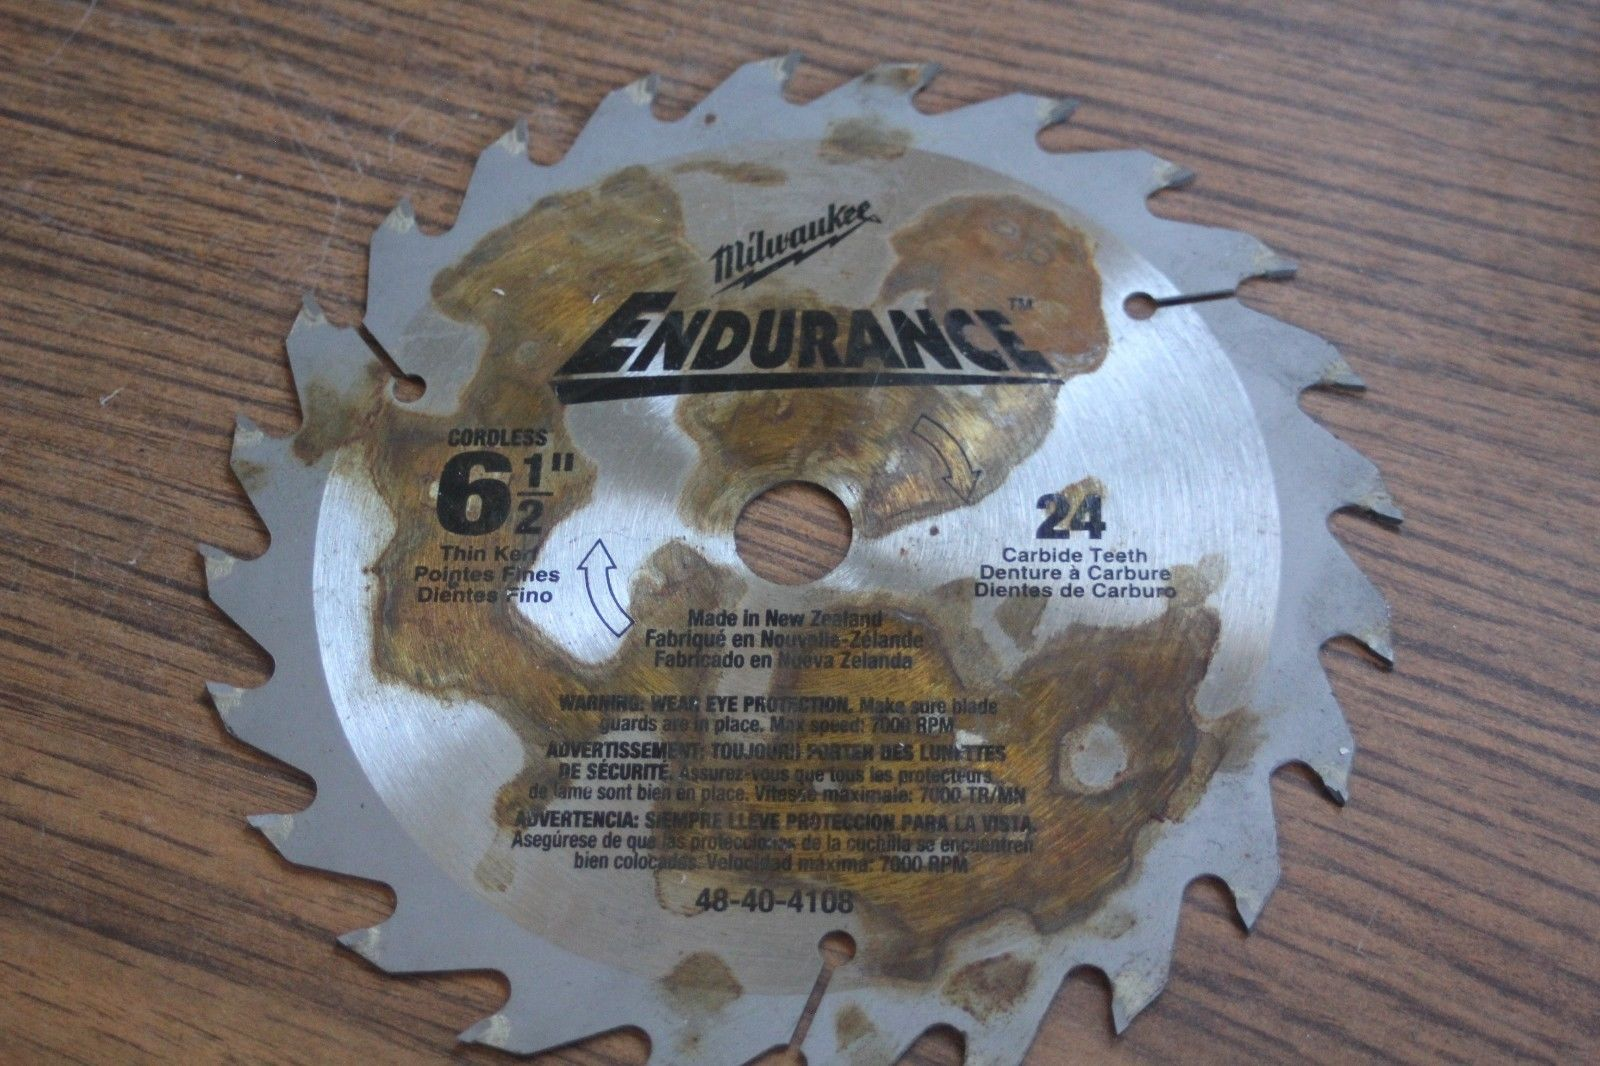 Milwaukee Endurance 24 Tooth Circular Saw and 26 similar items